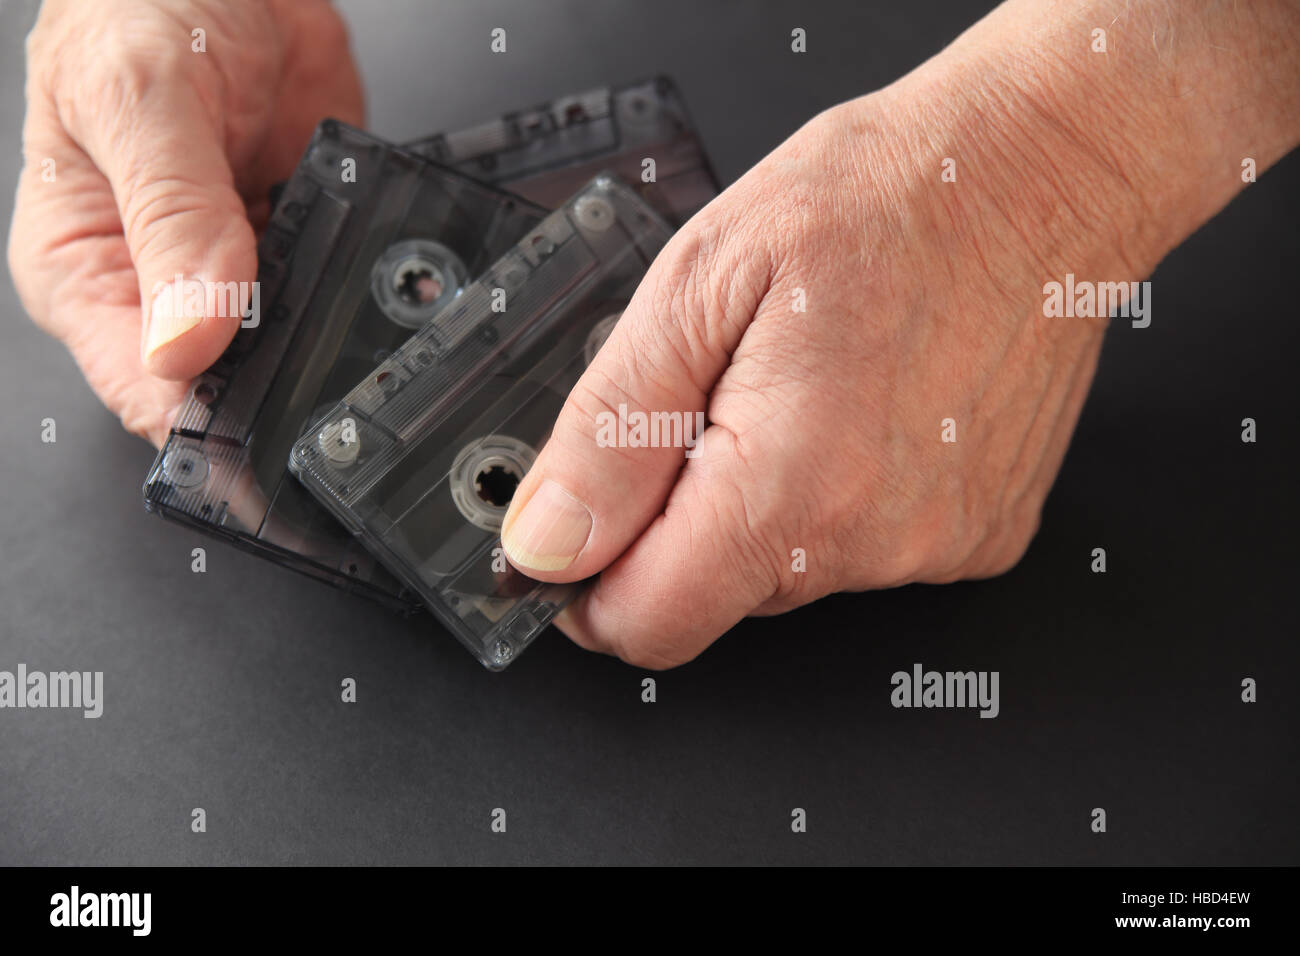 Senior man with three old cassette tapes on a dark background with copy space - Stock Image